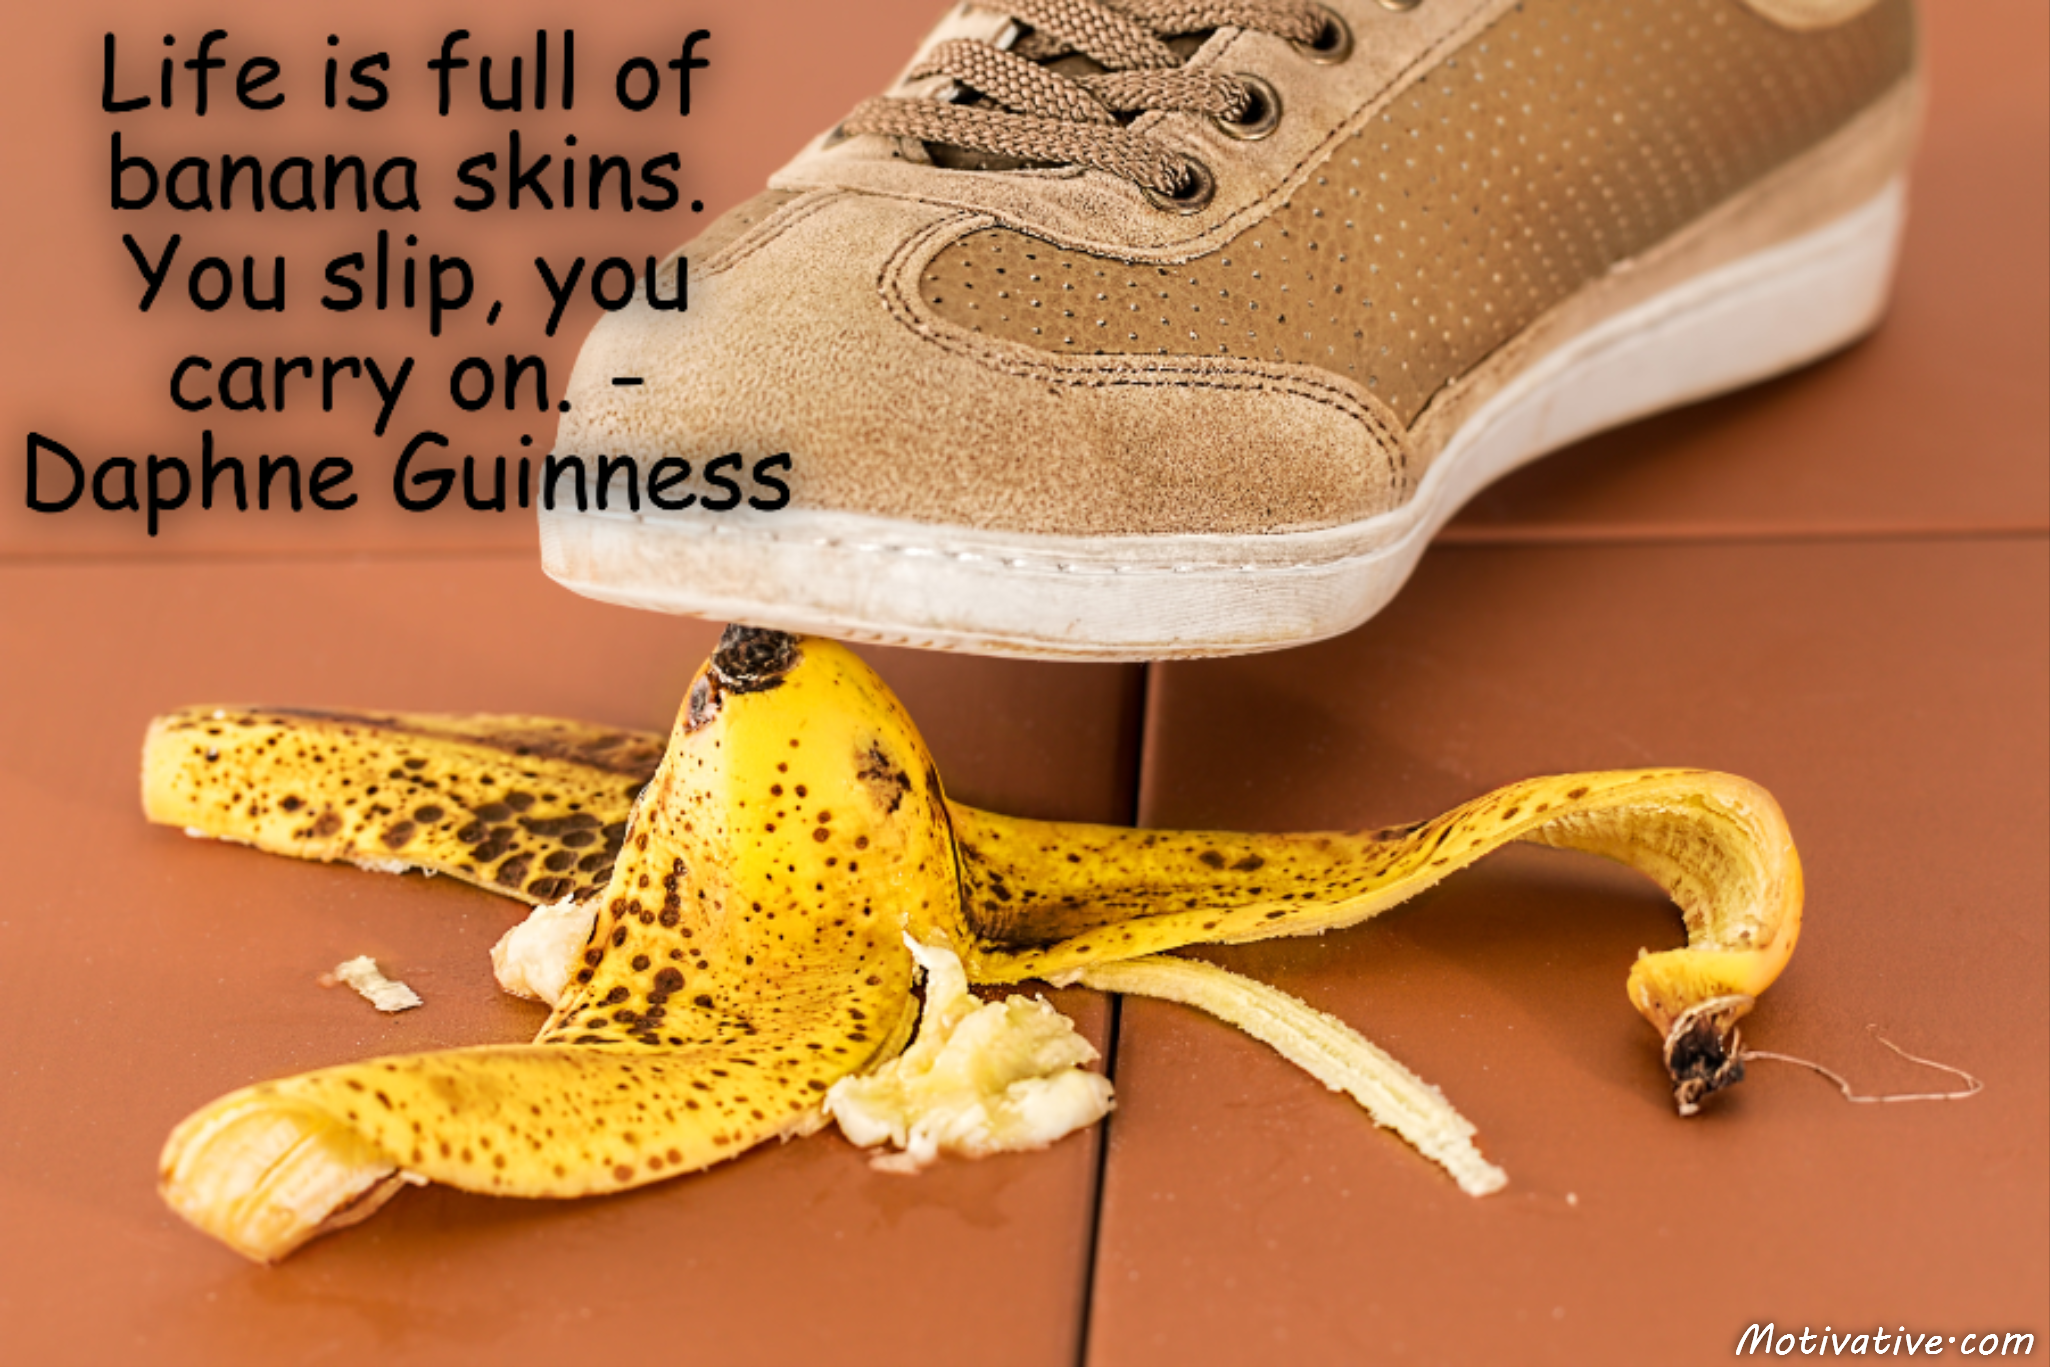 Life is full of banana skins. You slip, you carry on. – Daphne Guinness